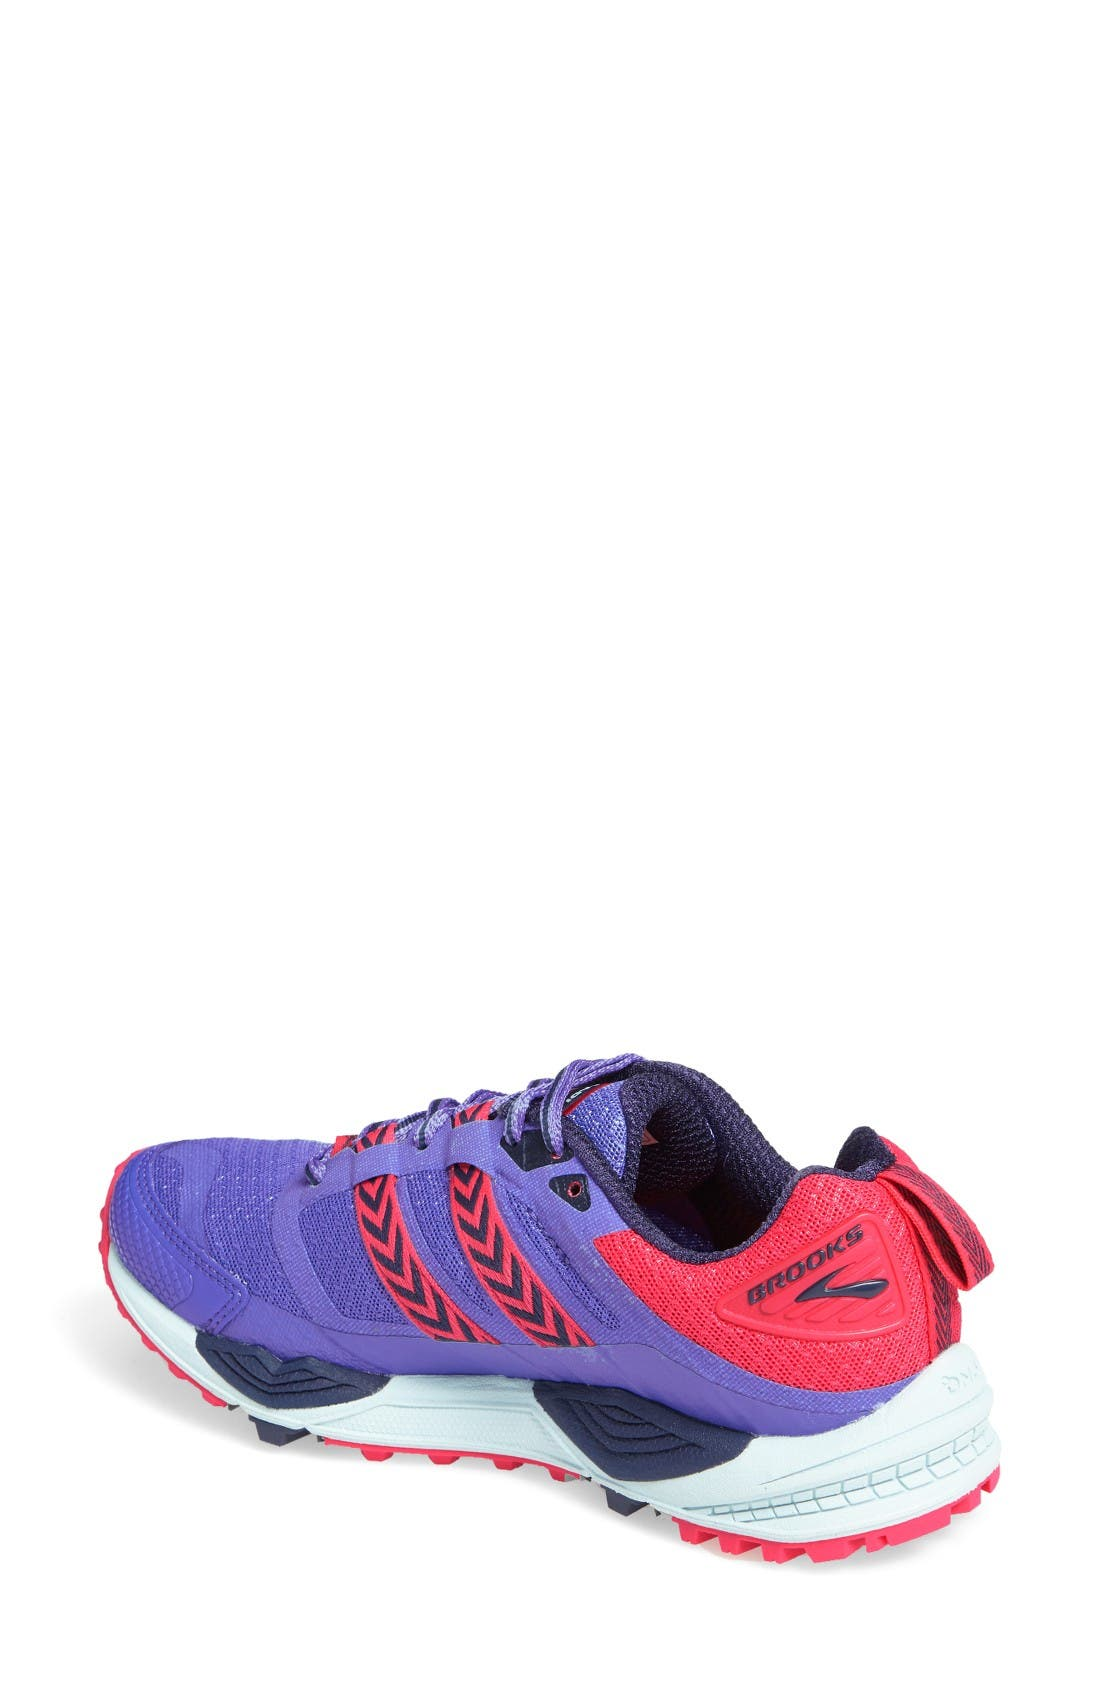 Cascadia 12 Trail Running Shoe,                             Alternate thumbnail 2, color,                             Baja Blue/ Pink/ Clearwater